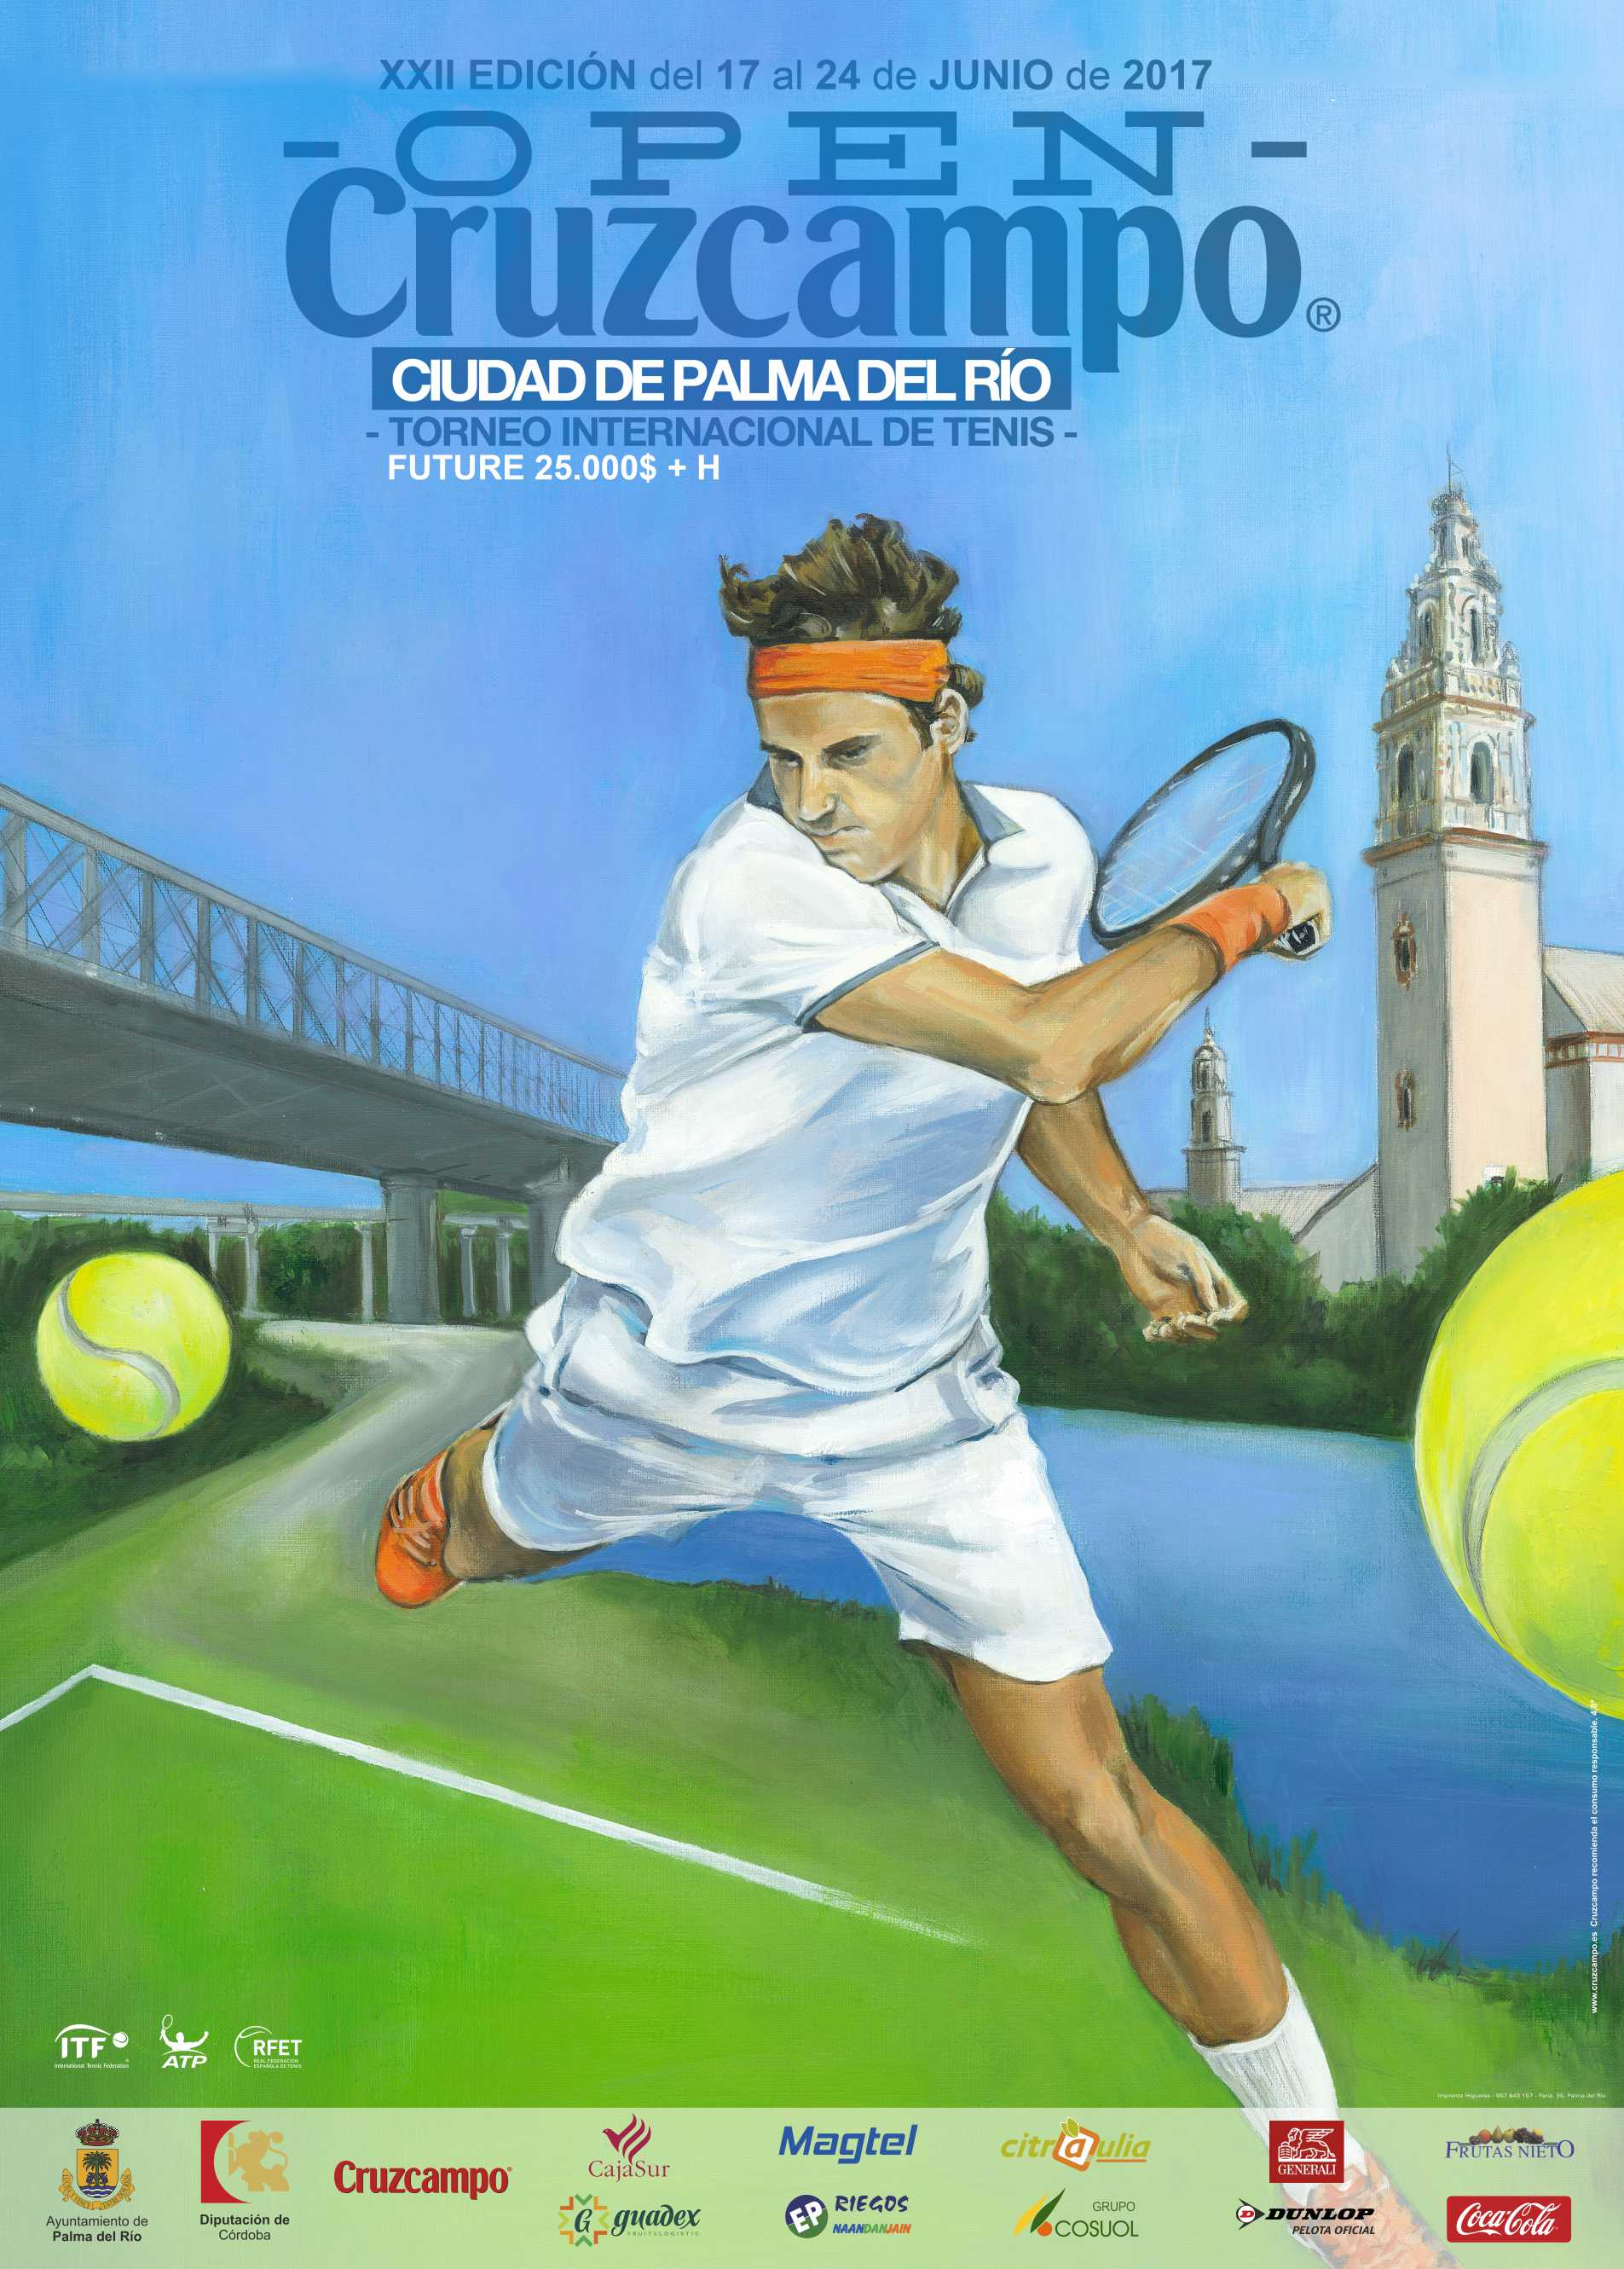 https://www.palmadelrio.es/sites/default/files/atp_torneo_de_tenis_xxii_cartel_0.jpg